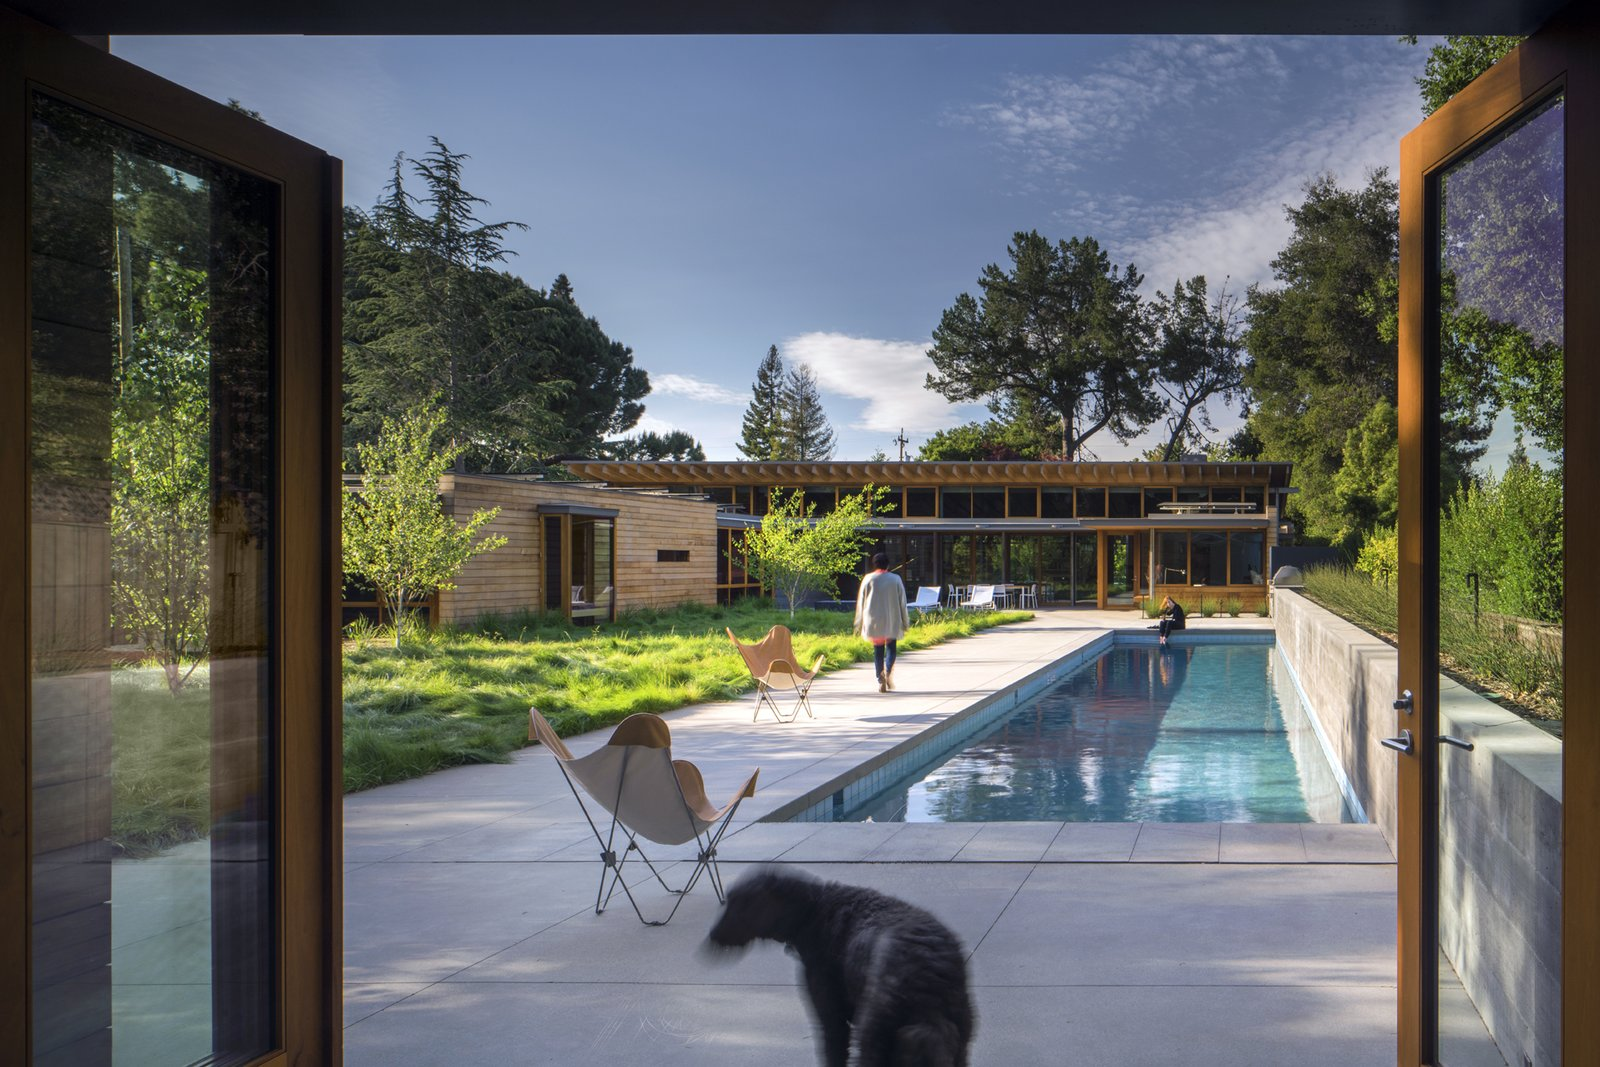 Photo 1 of 8 in Channeling Midcentury Modern in Northern California